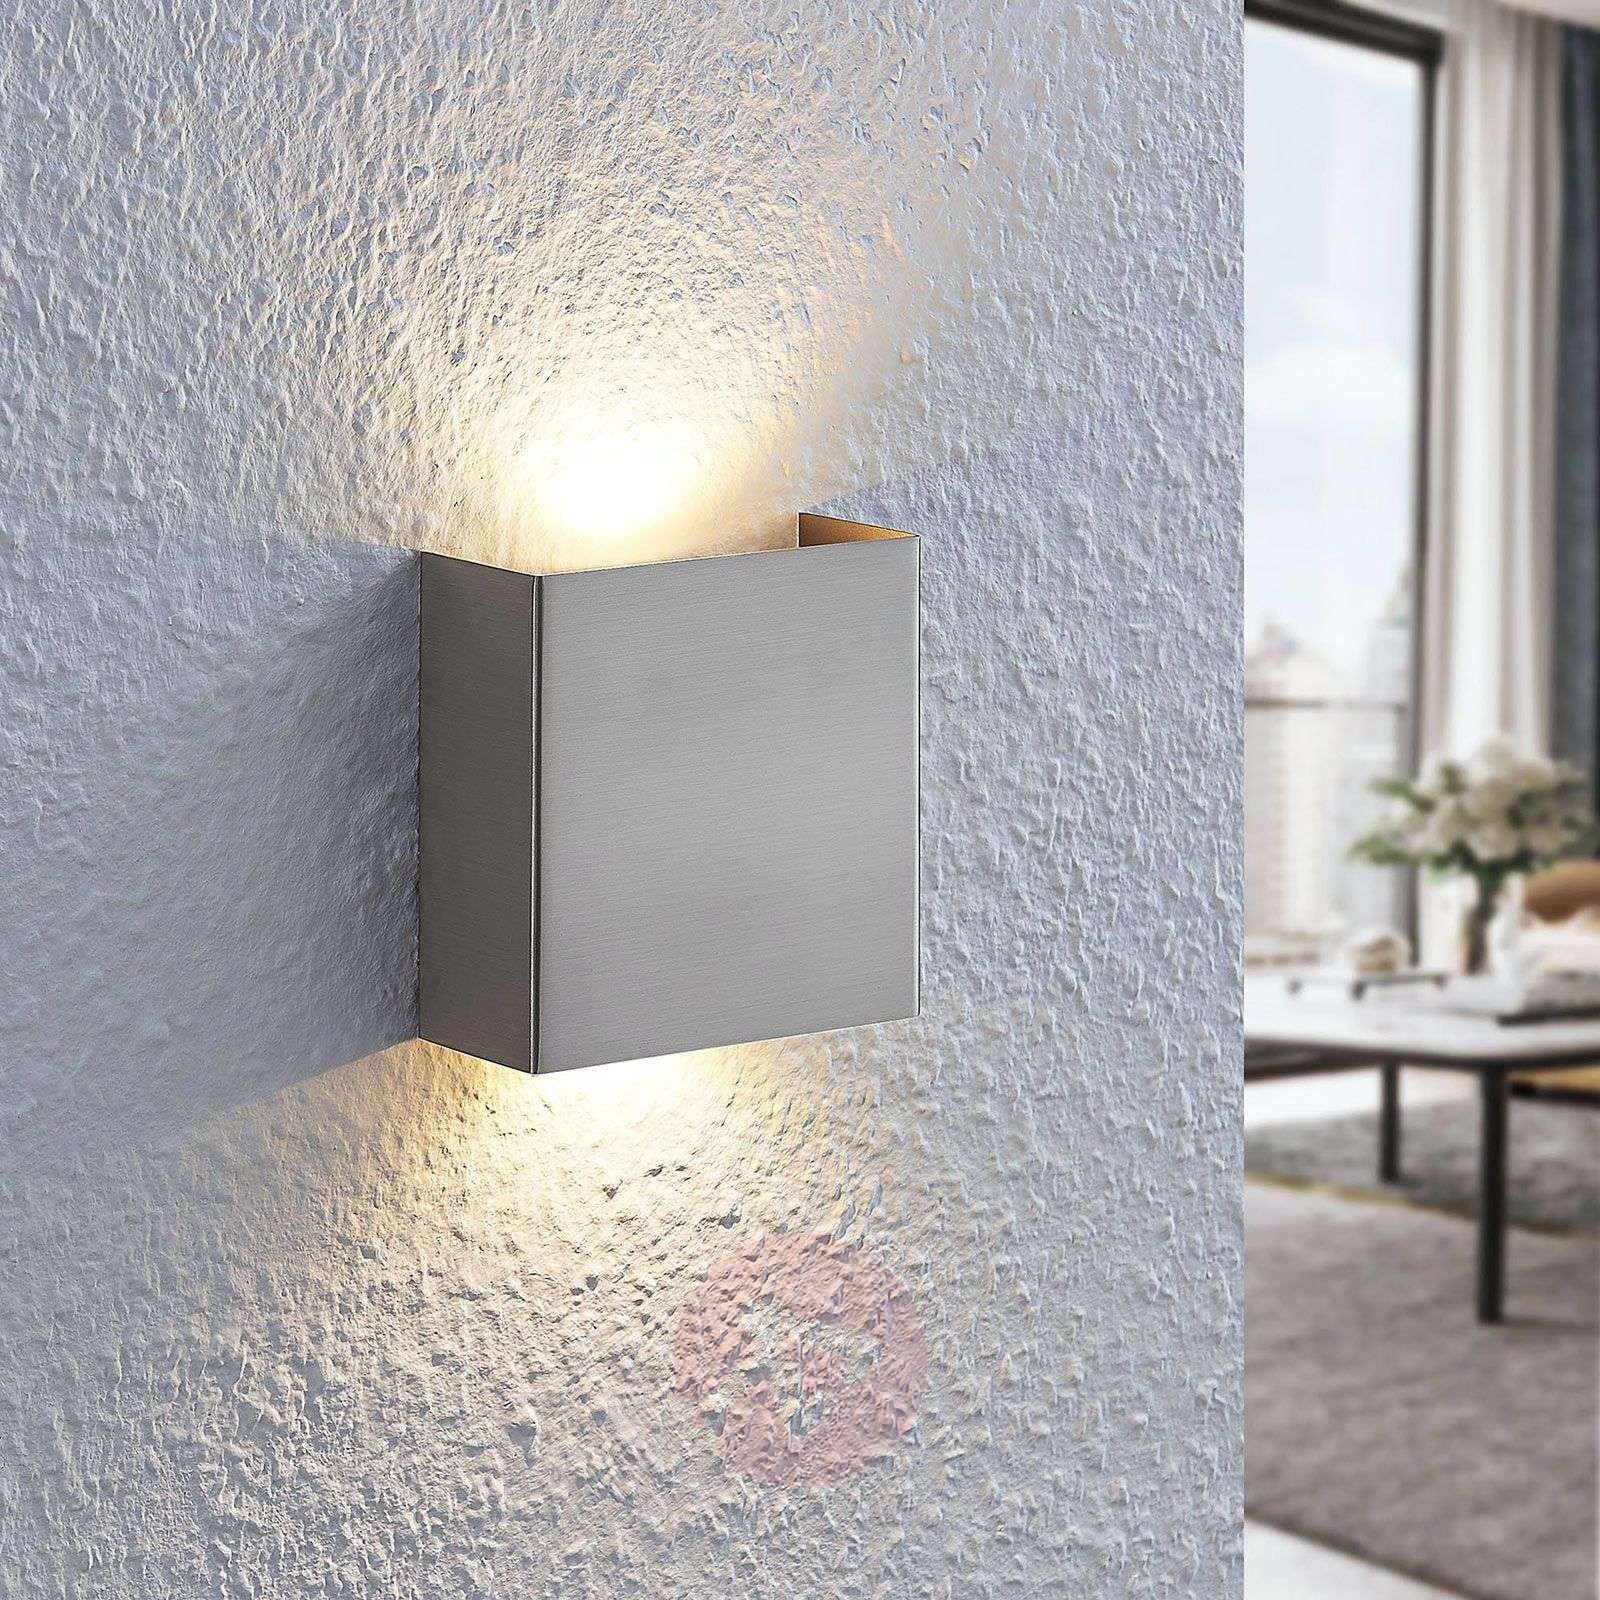 Applique a LED Manon, nichel satinato, 10,5 cm-9633045-02